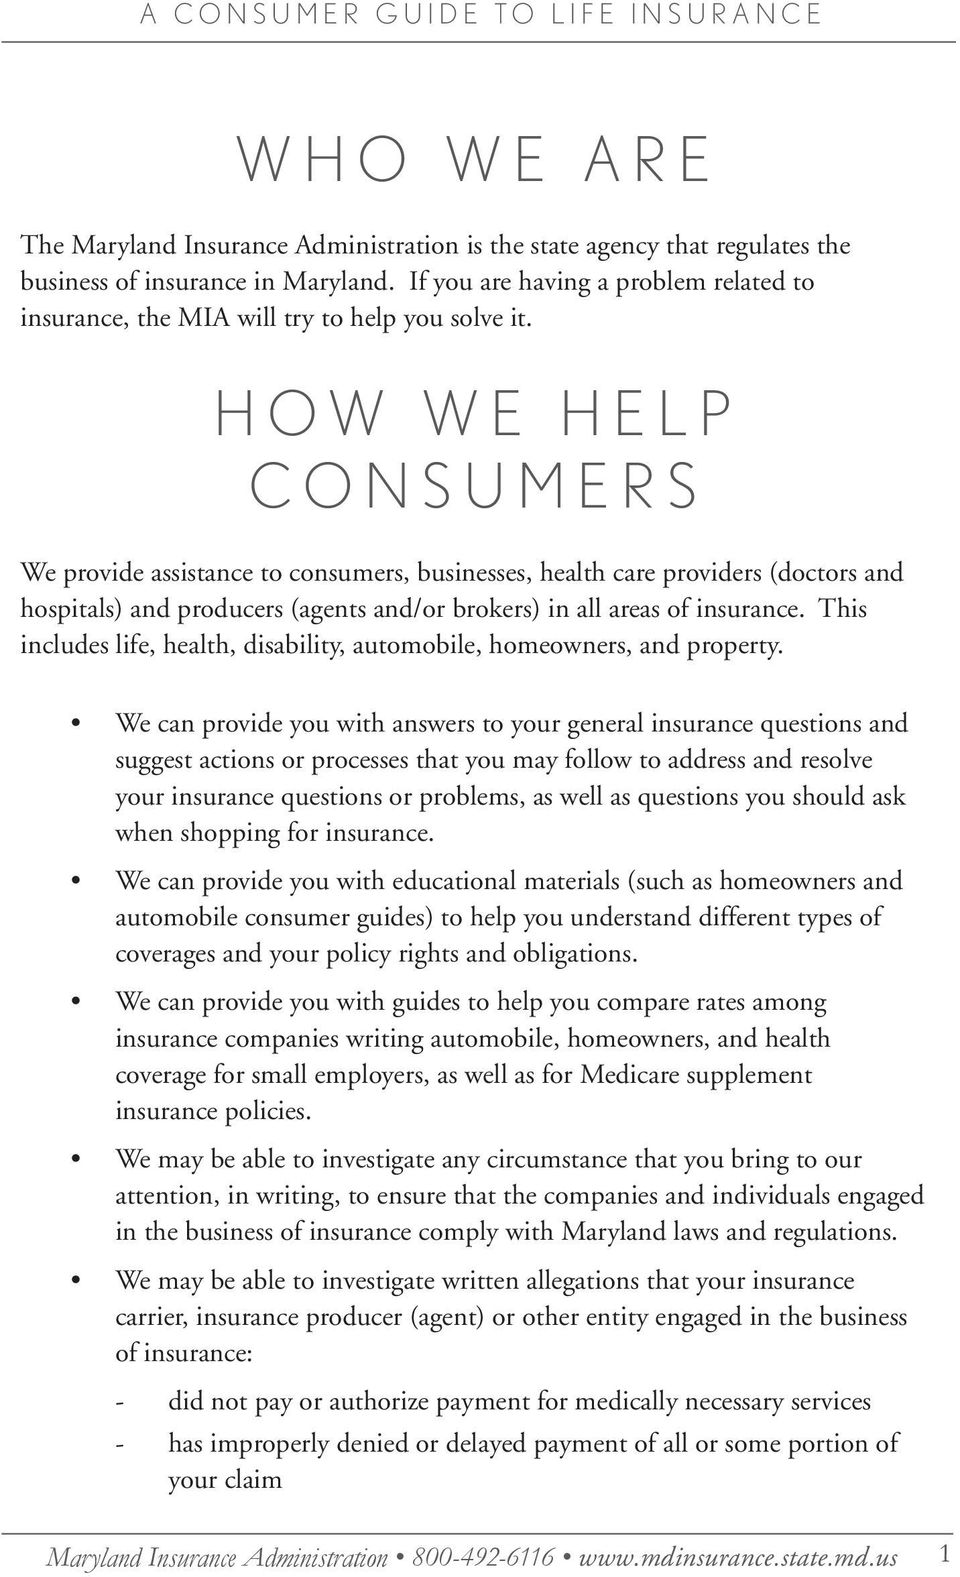 HOW WE HELP CONSUMERS We provide assistance to consumers, businesses, health care providers (doctors and hospitals) and producers (agents and/or brokers) in all areas of insurance.